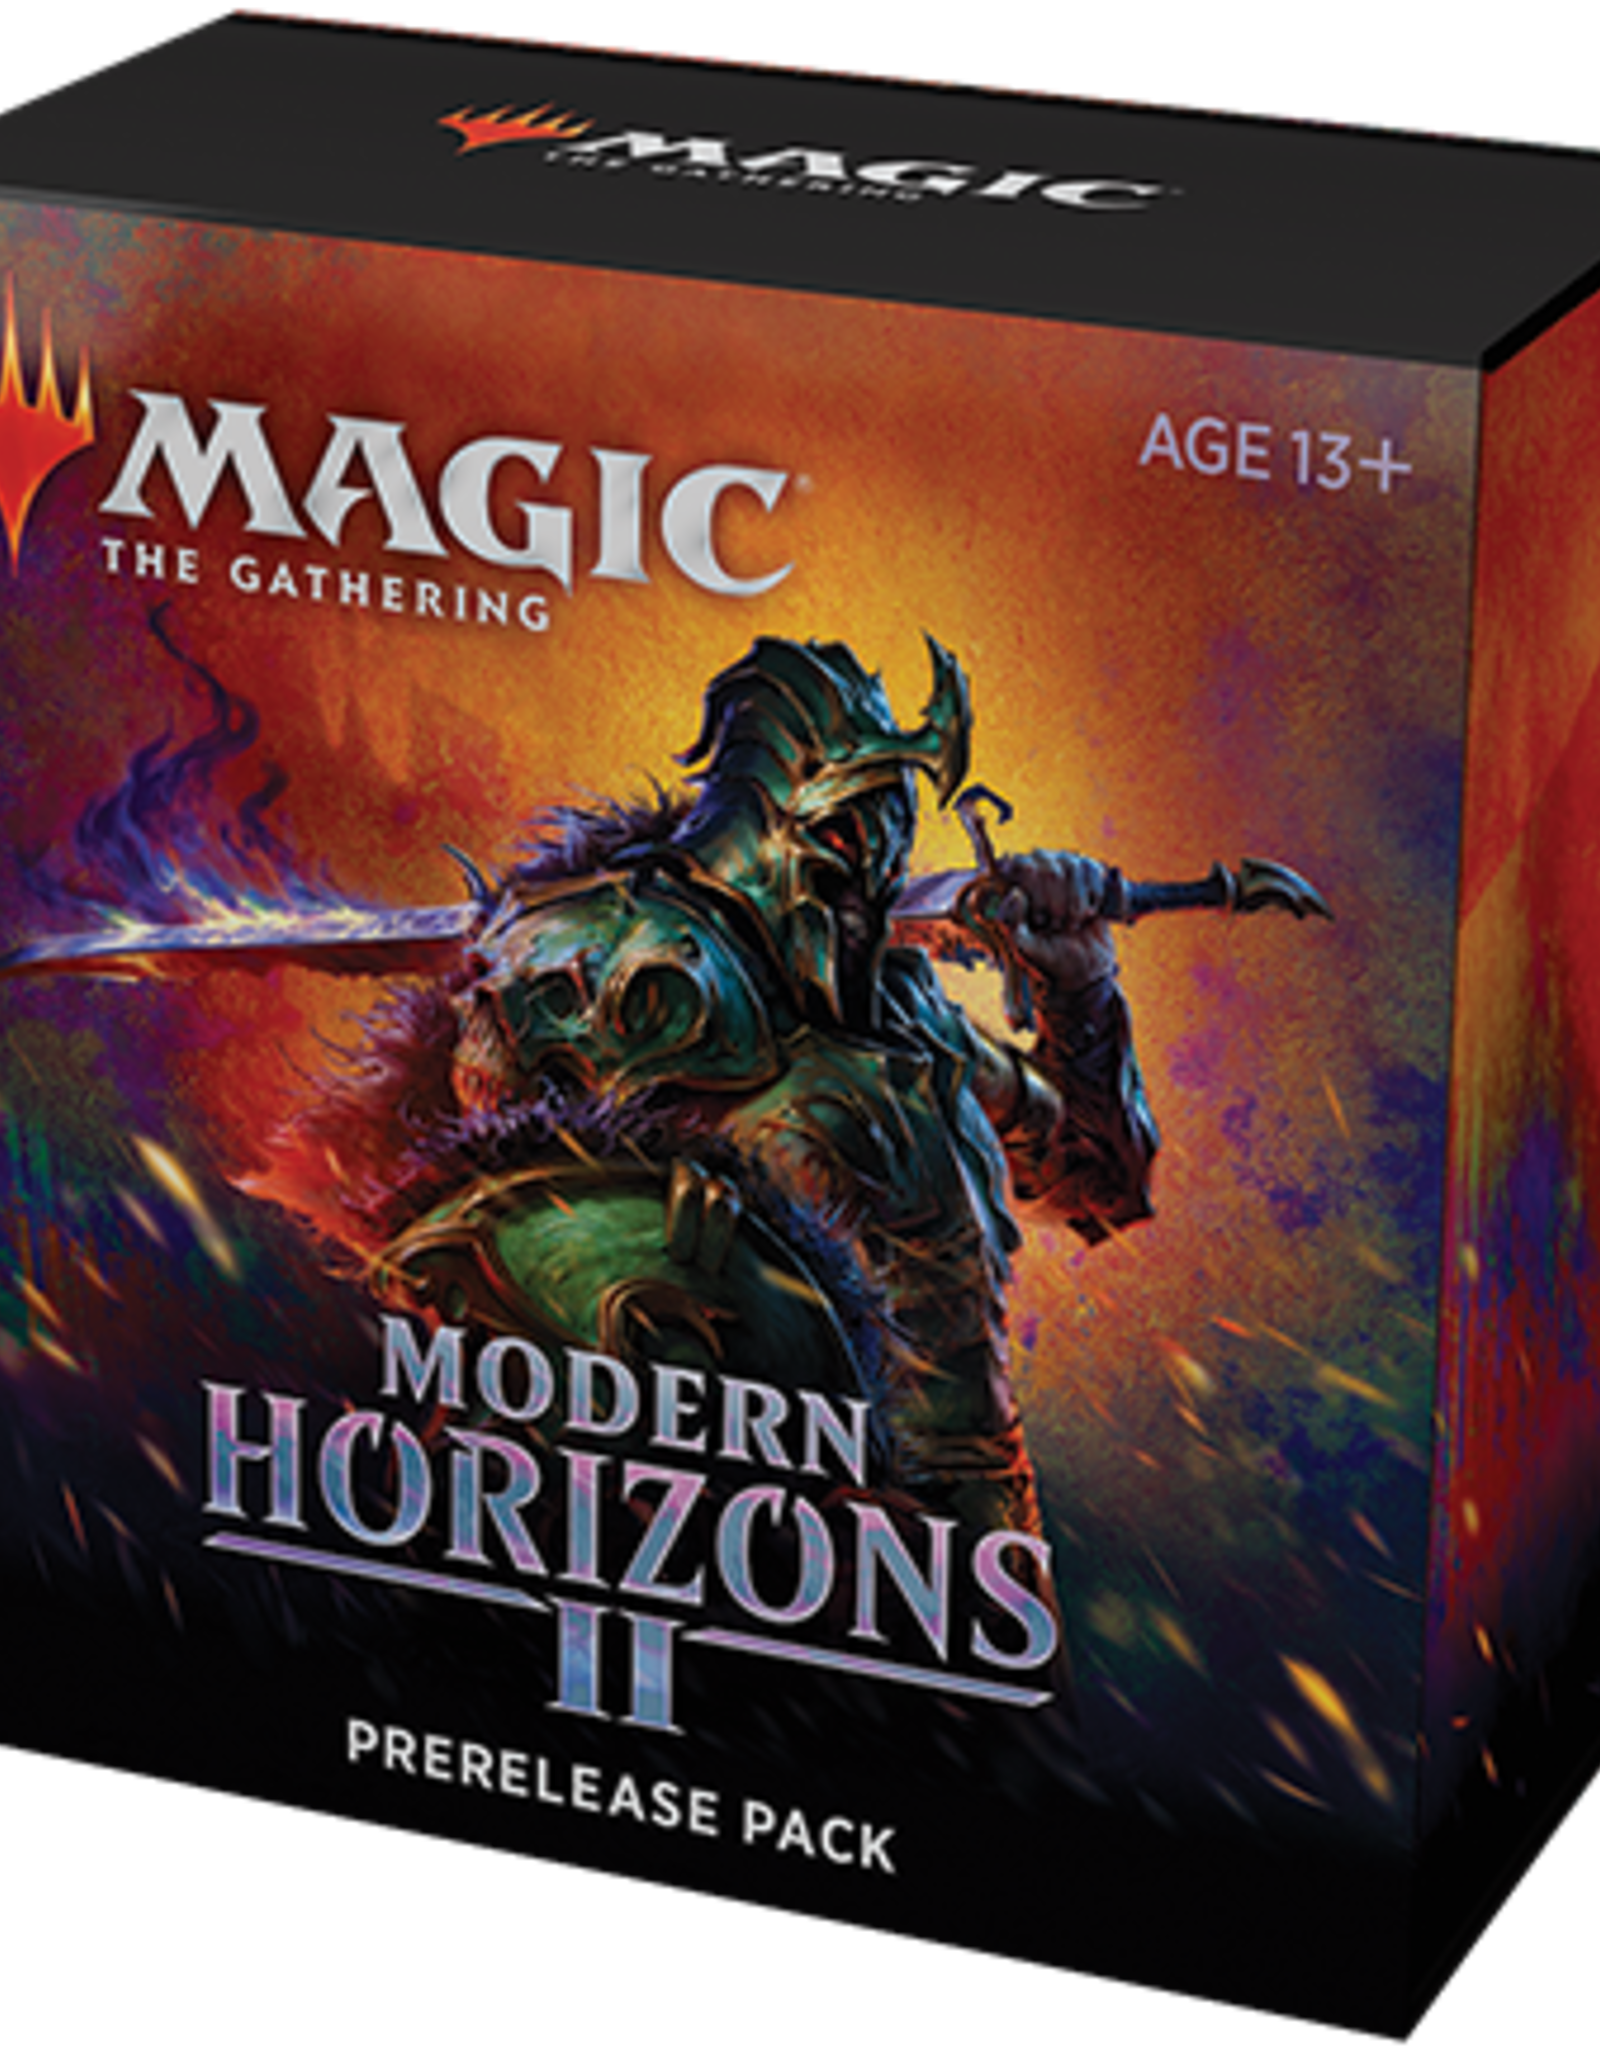 Wizards of the Coast Modern Horizons 2 Prerelease Kit WITH 2 BOOSTERS - At Home & Webcam [Preorder]